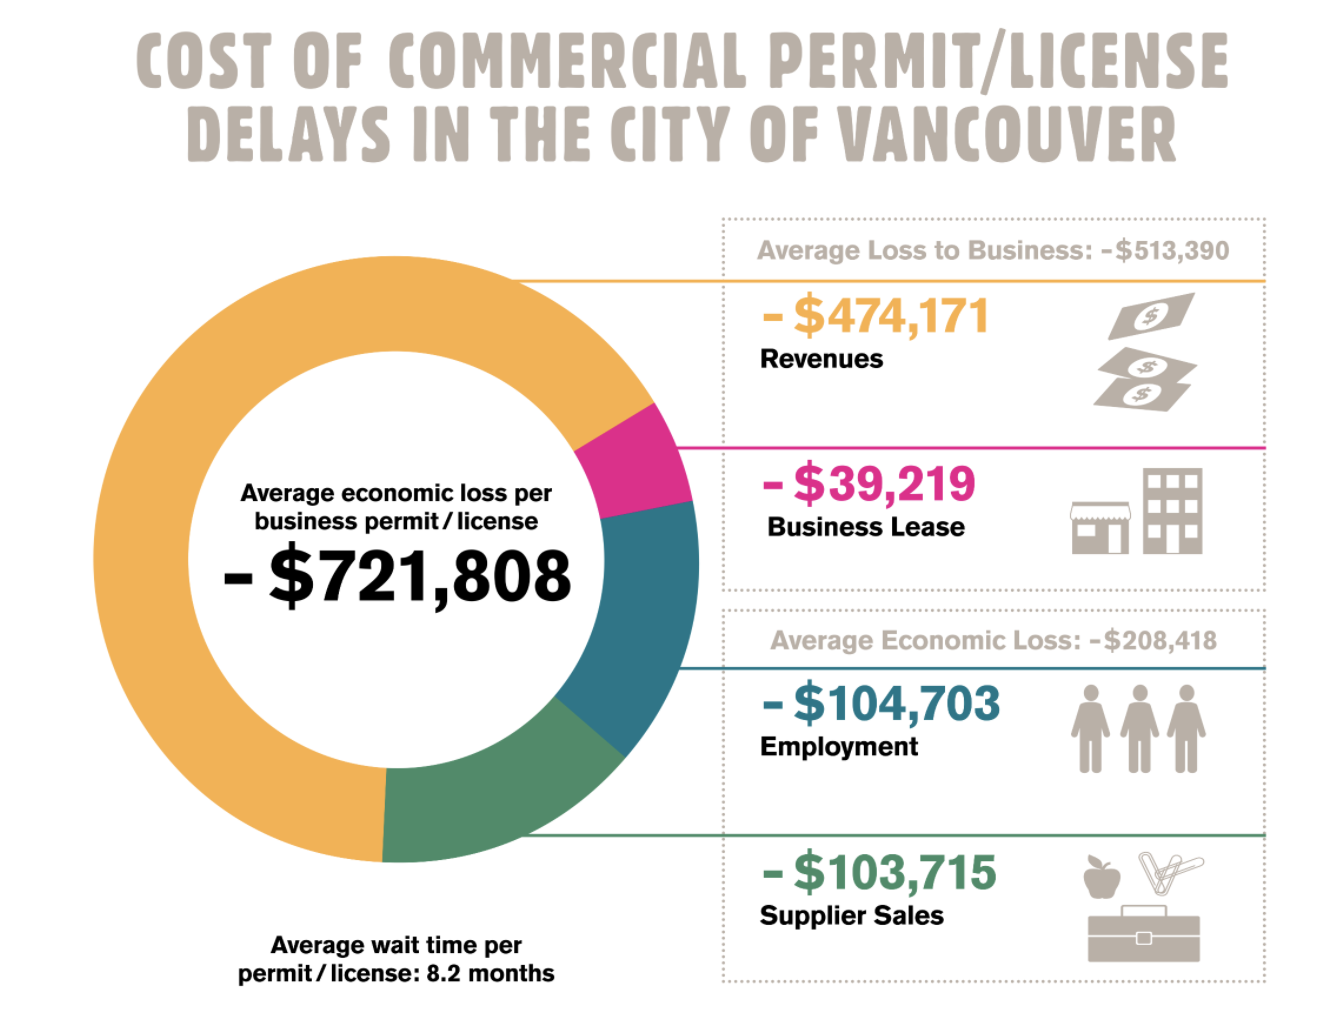 Cost of Permit/License Delays in the City of Vancouver, BC